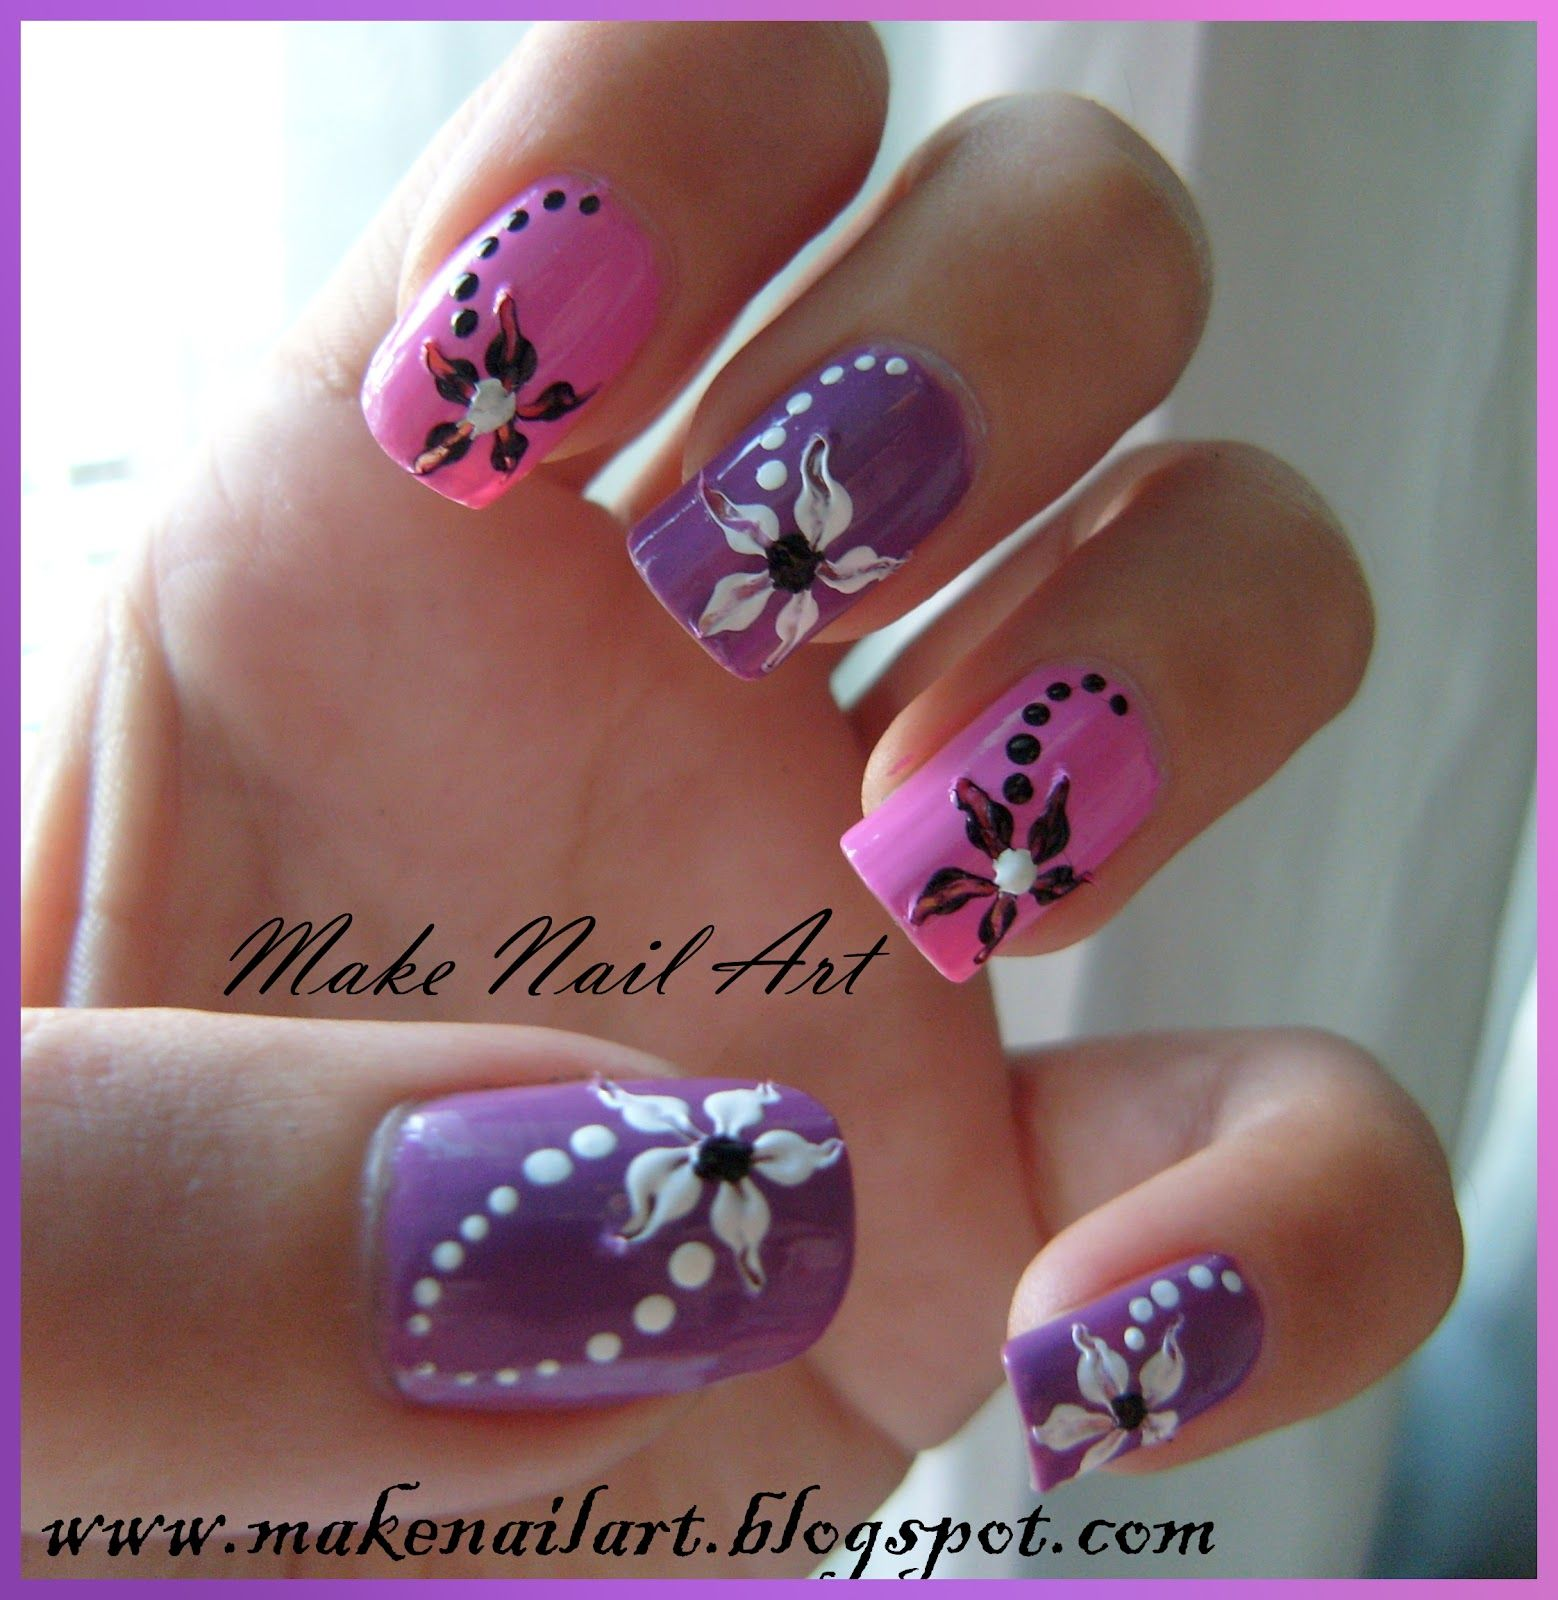 Make Nail Art: Easy And Beautiful Flower Nail Art Tutorflower nail art - Make Nail Art: Easy And Beautiful Flower Nail Art Tutorflower Nail